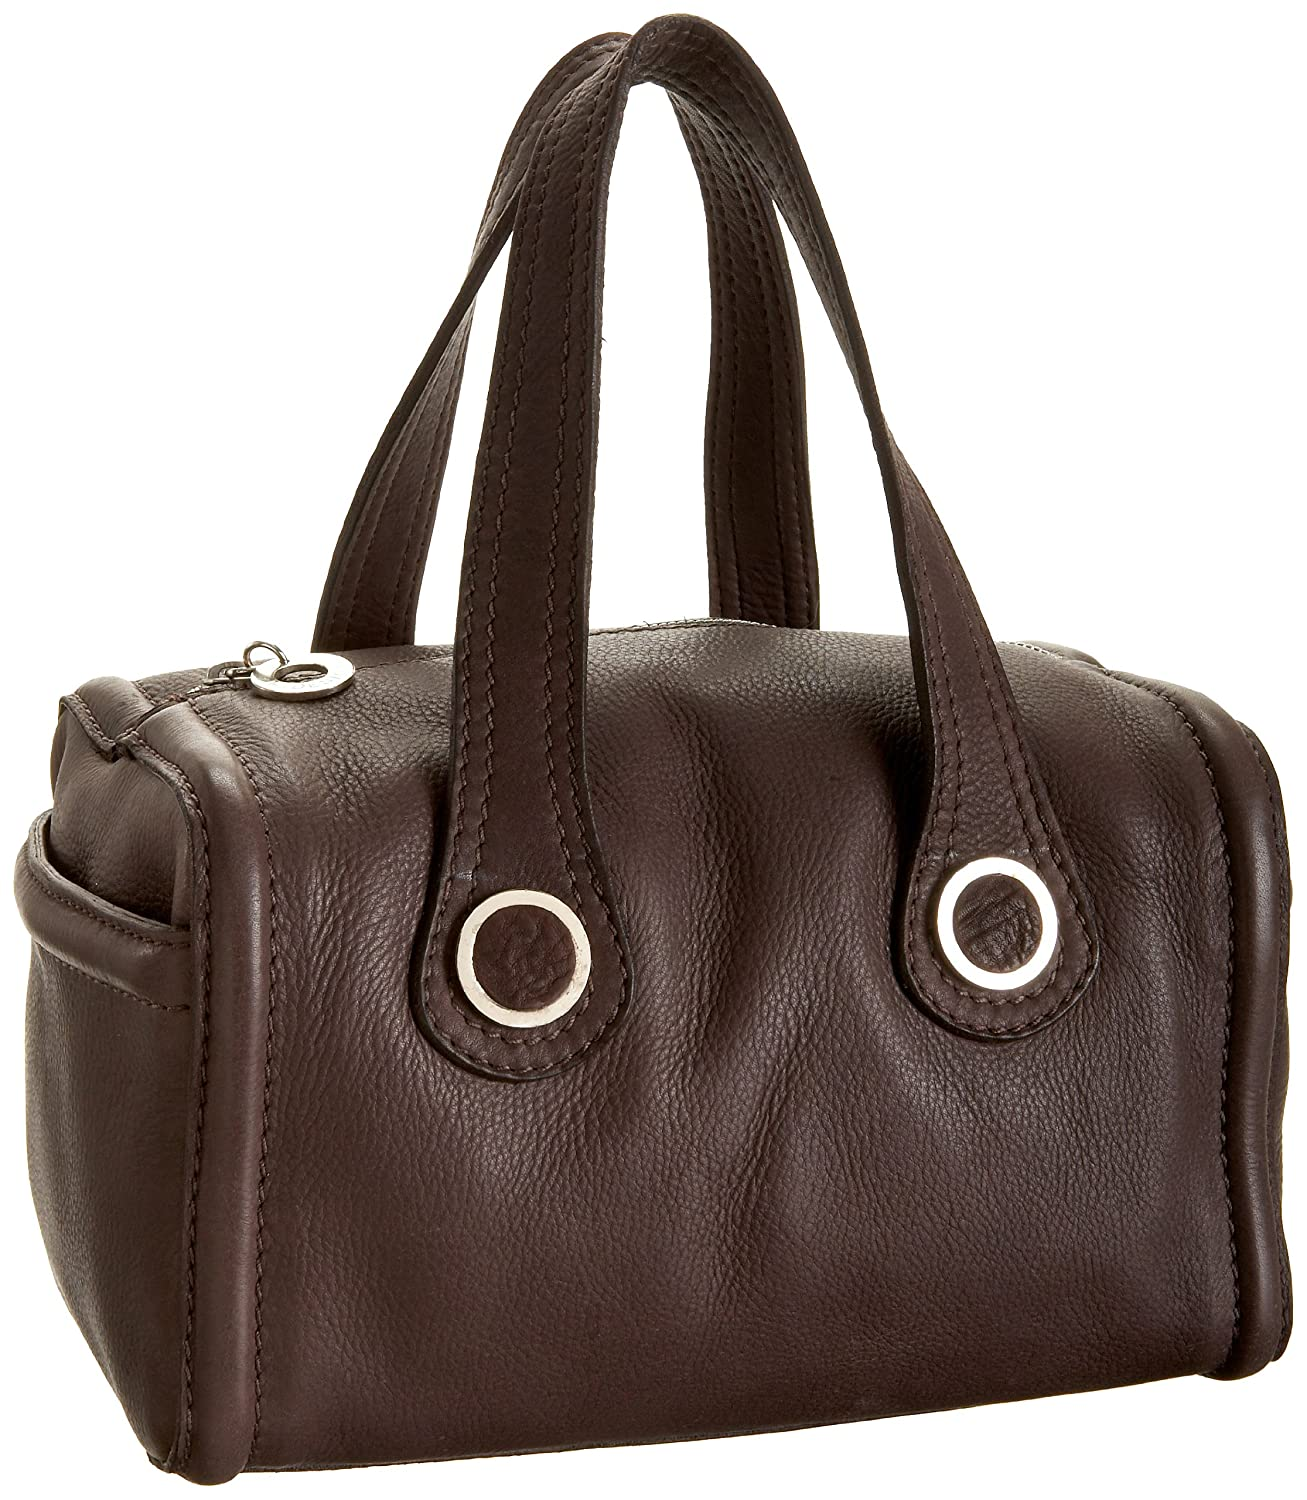 HIDESIGN by Scully Sorrento 1 Satchel